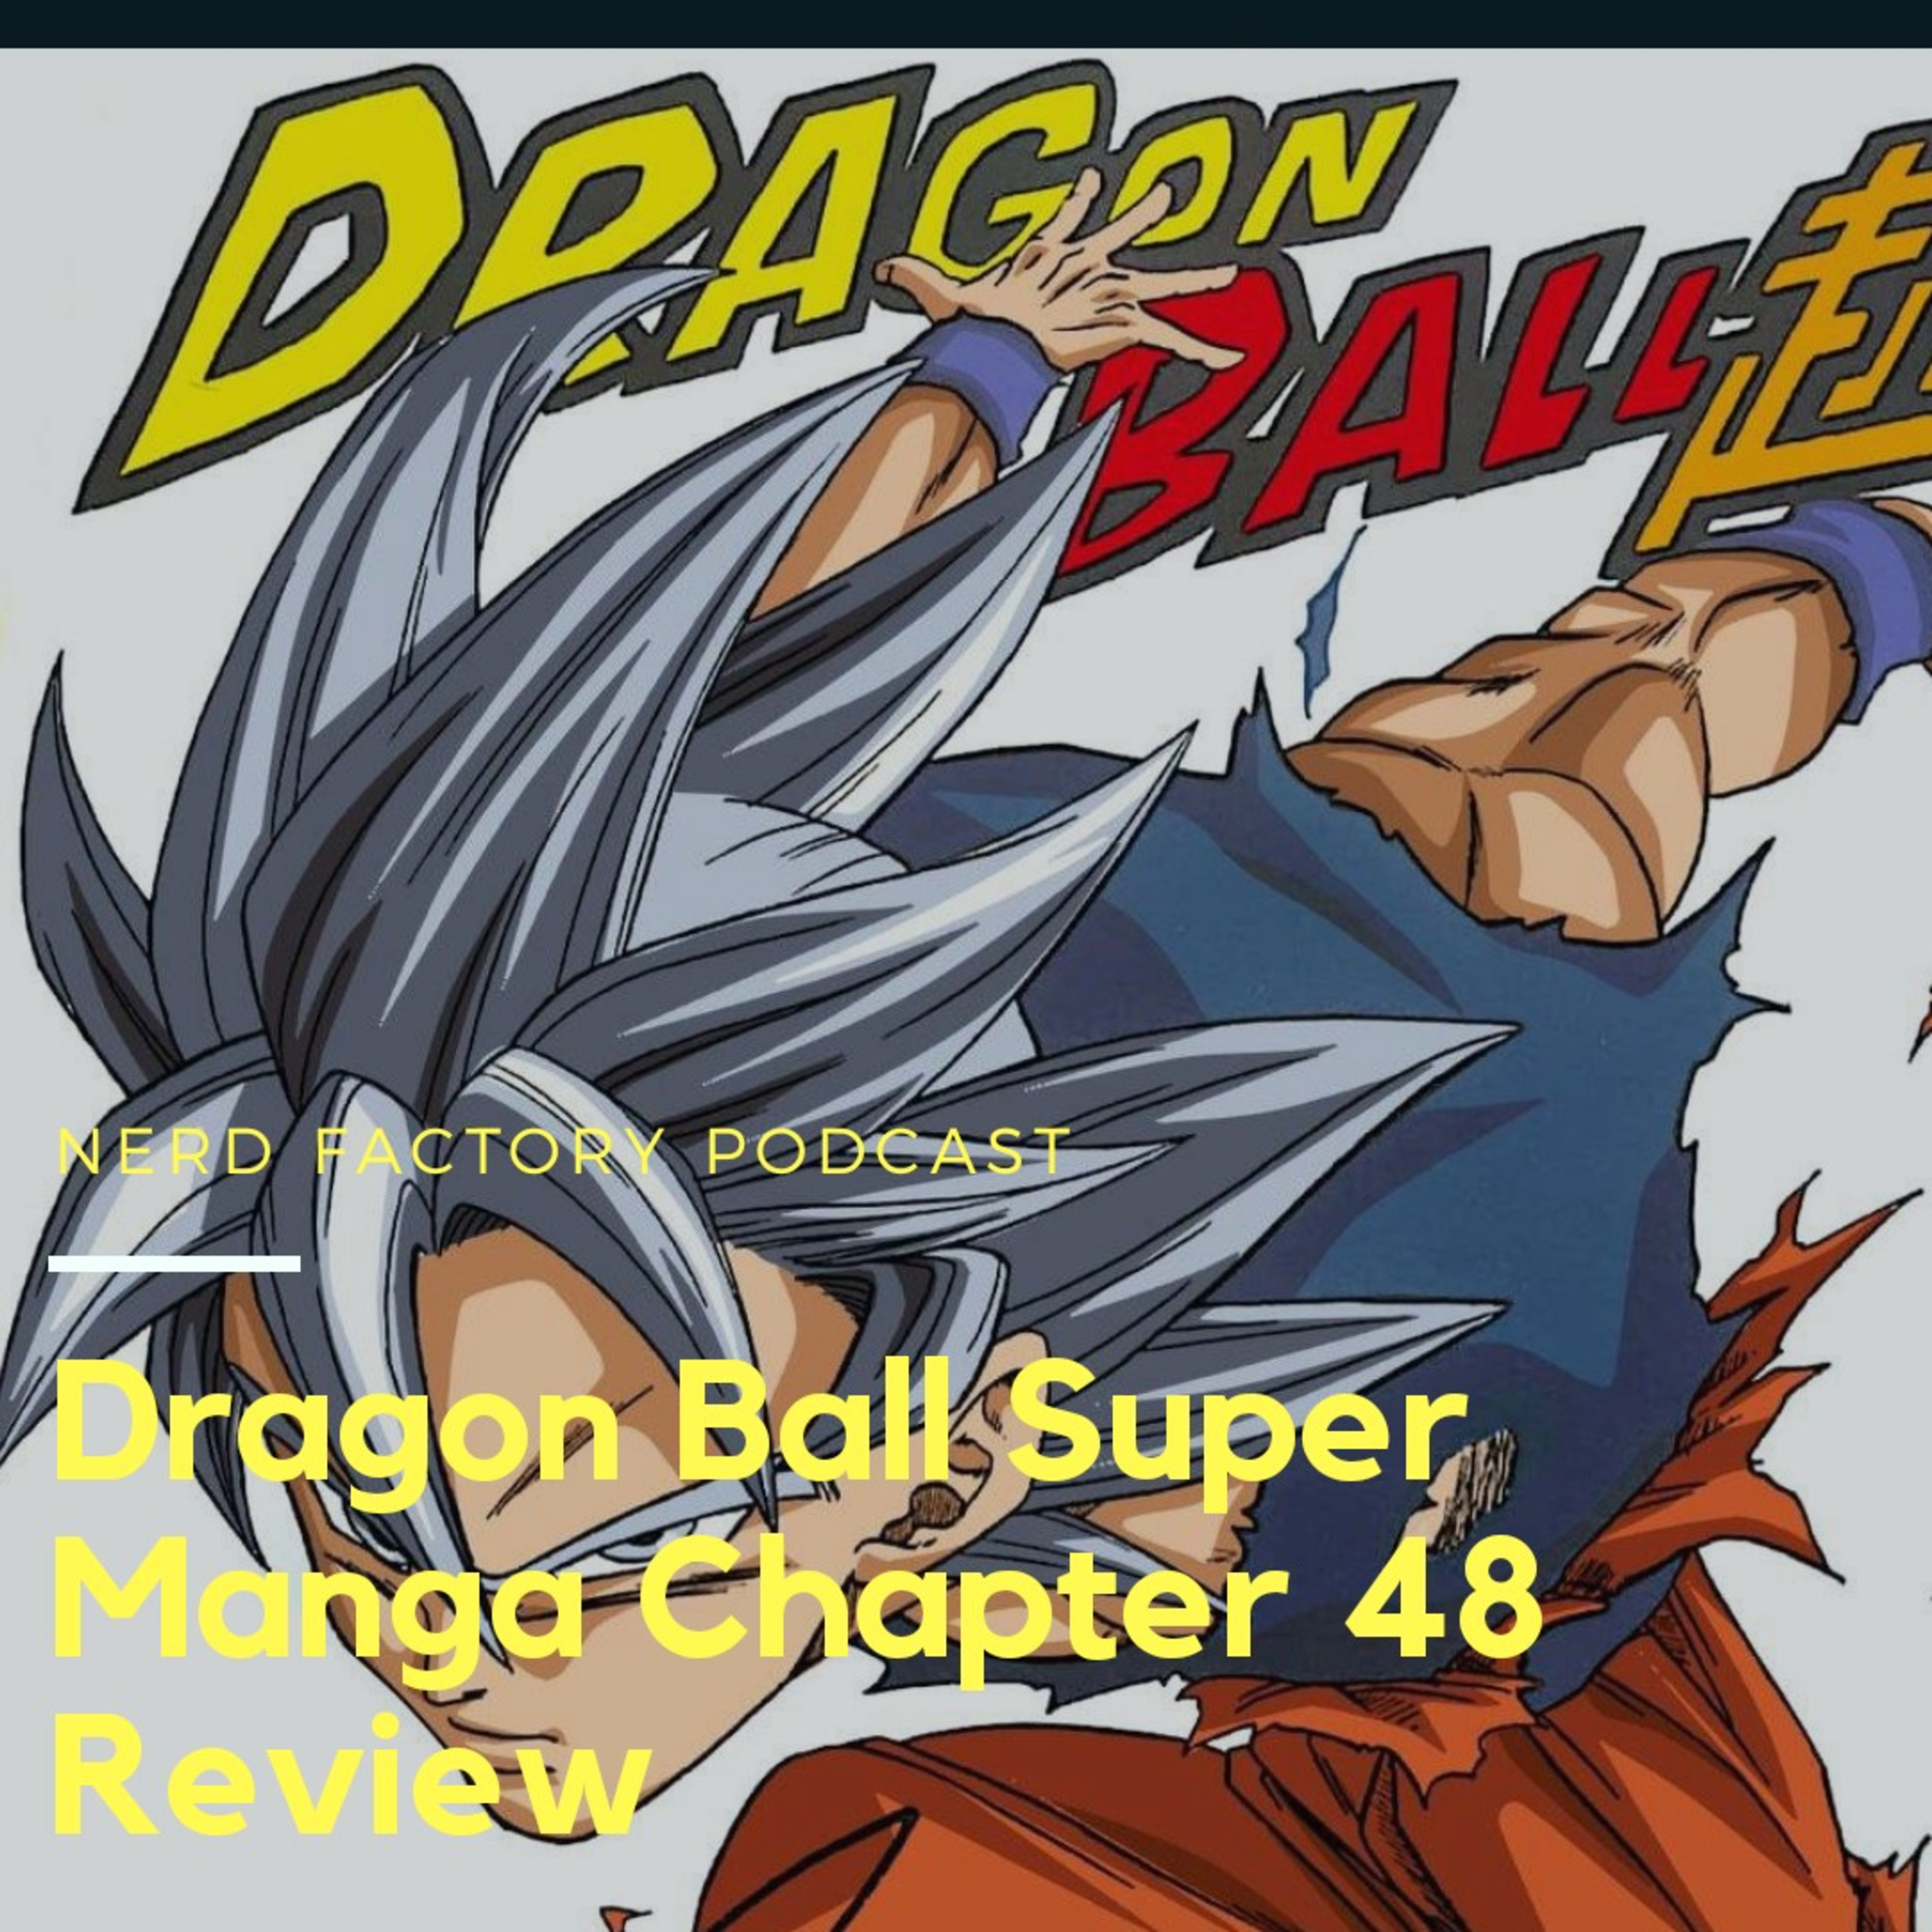 Dragon Ball Super Manga - Chapter 48 Review and Discussion